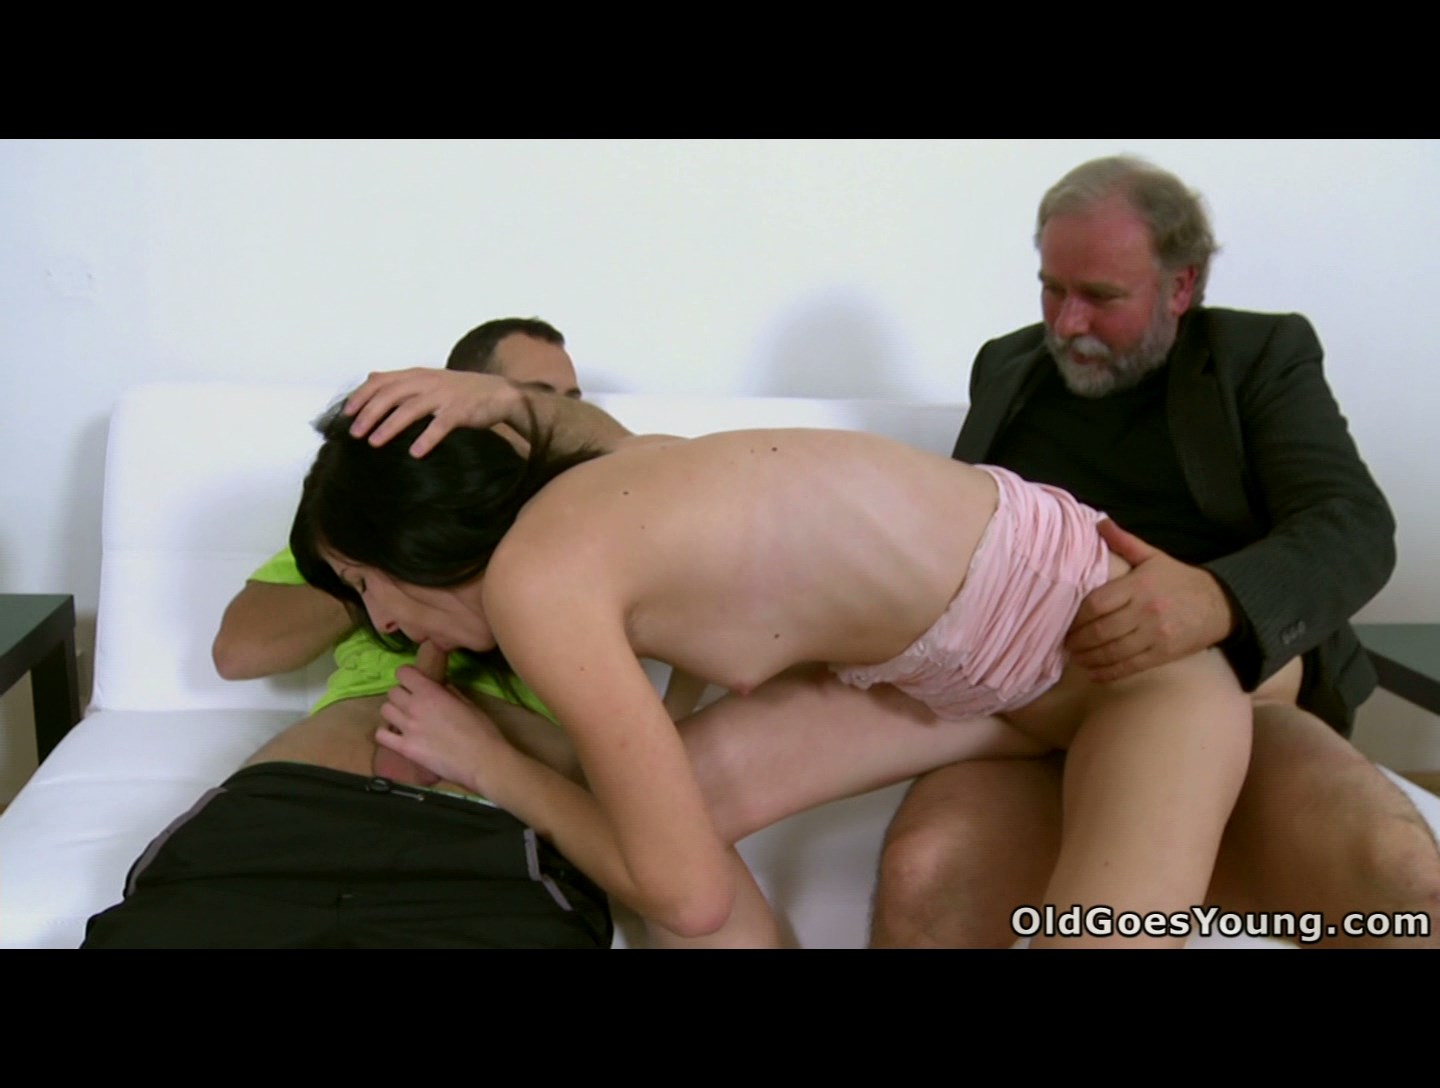 Skinny 18 y.o. brunette doubleteamed by guy and his old mate